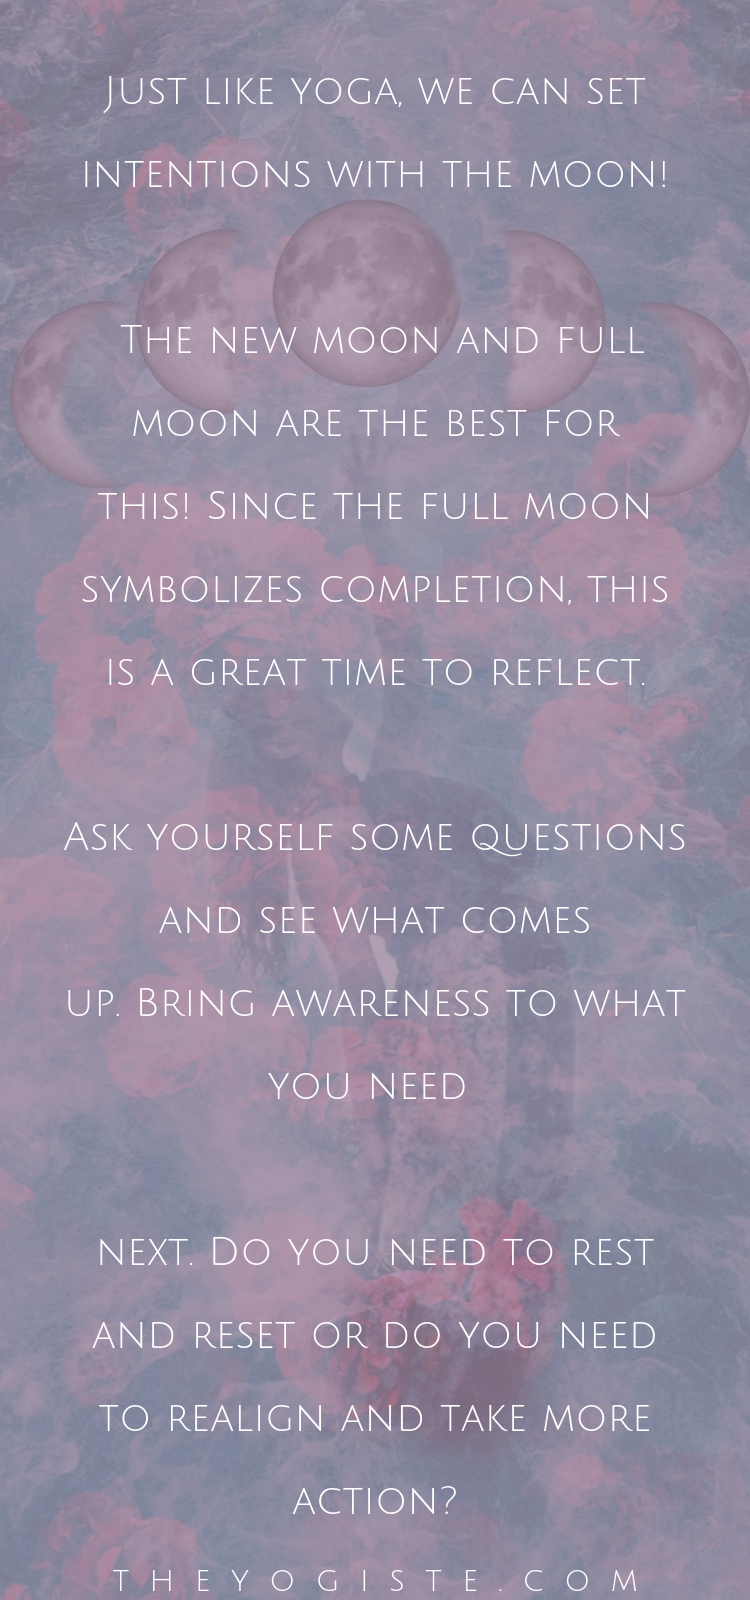 Yoga With The Moon #newmoonritual